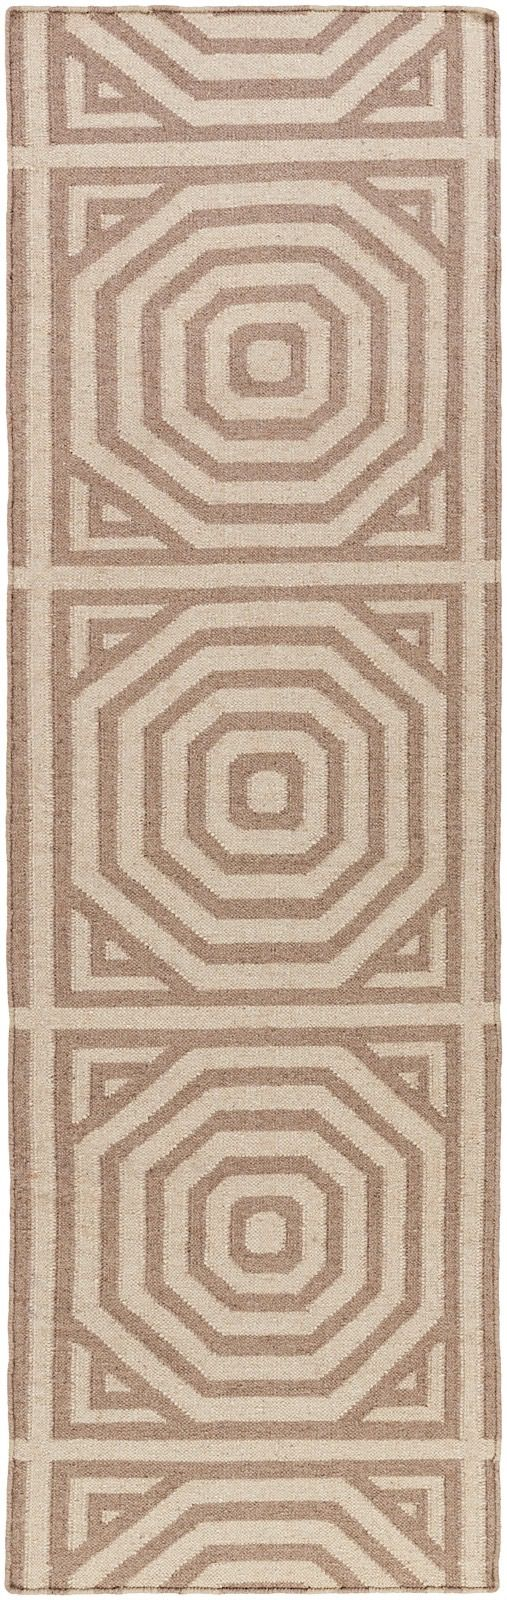 surya rivington contemporary area rug collection